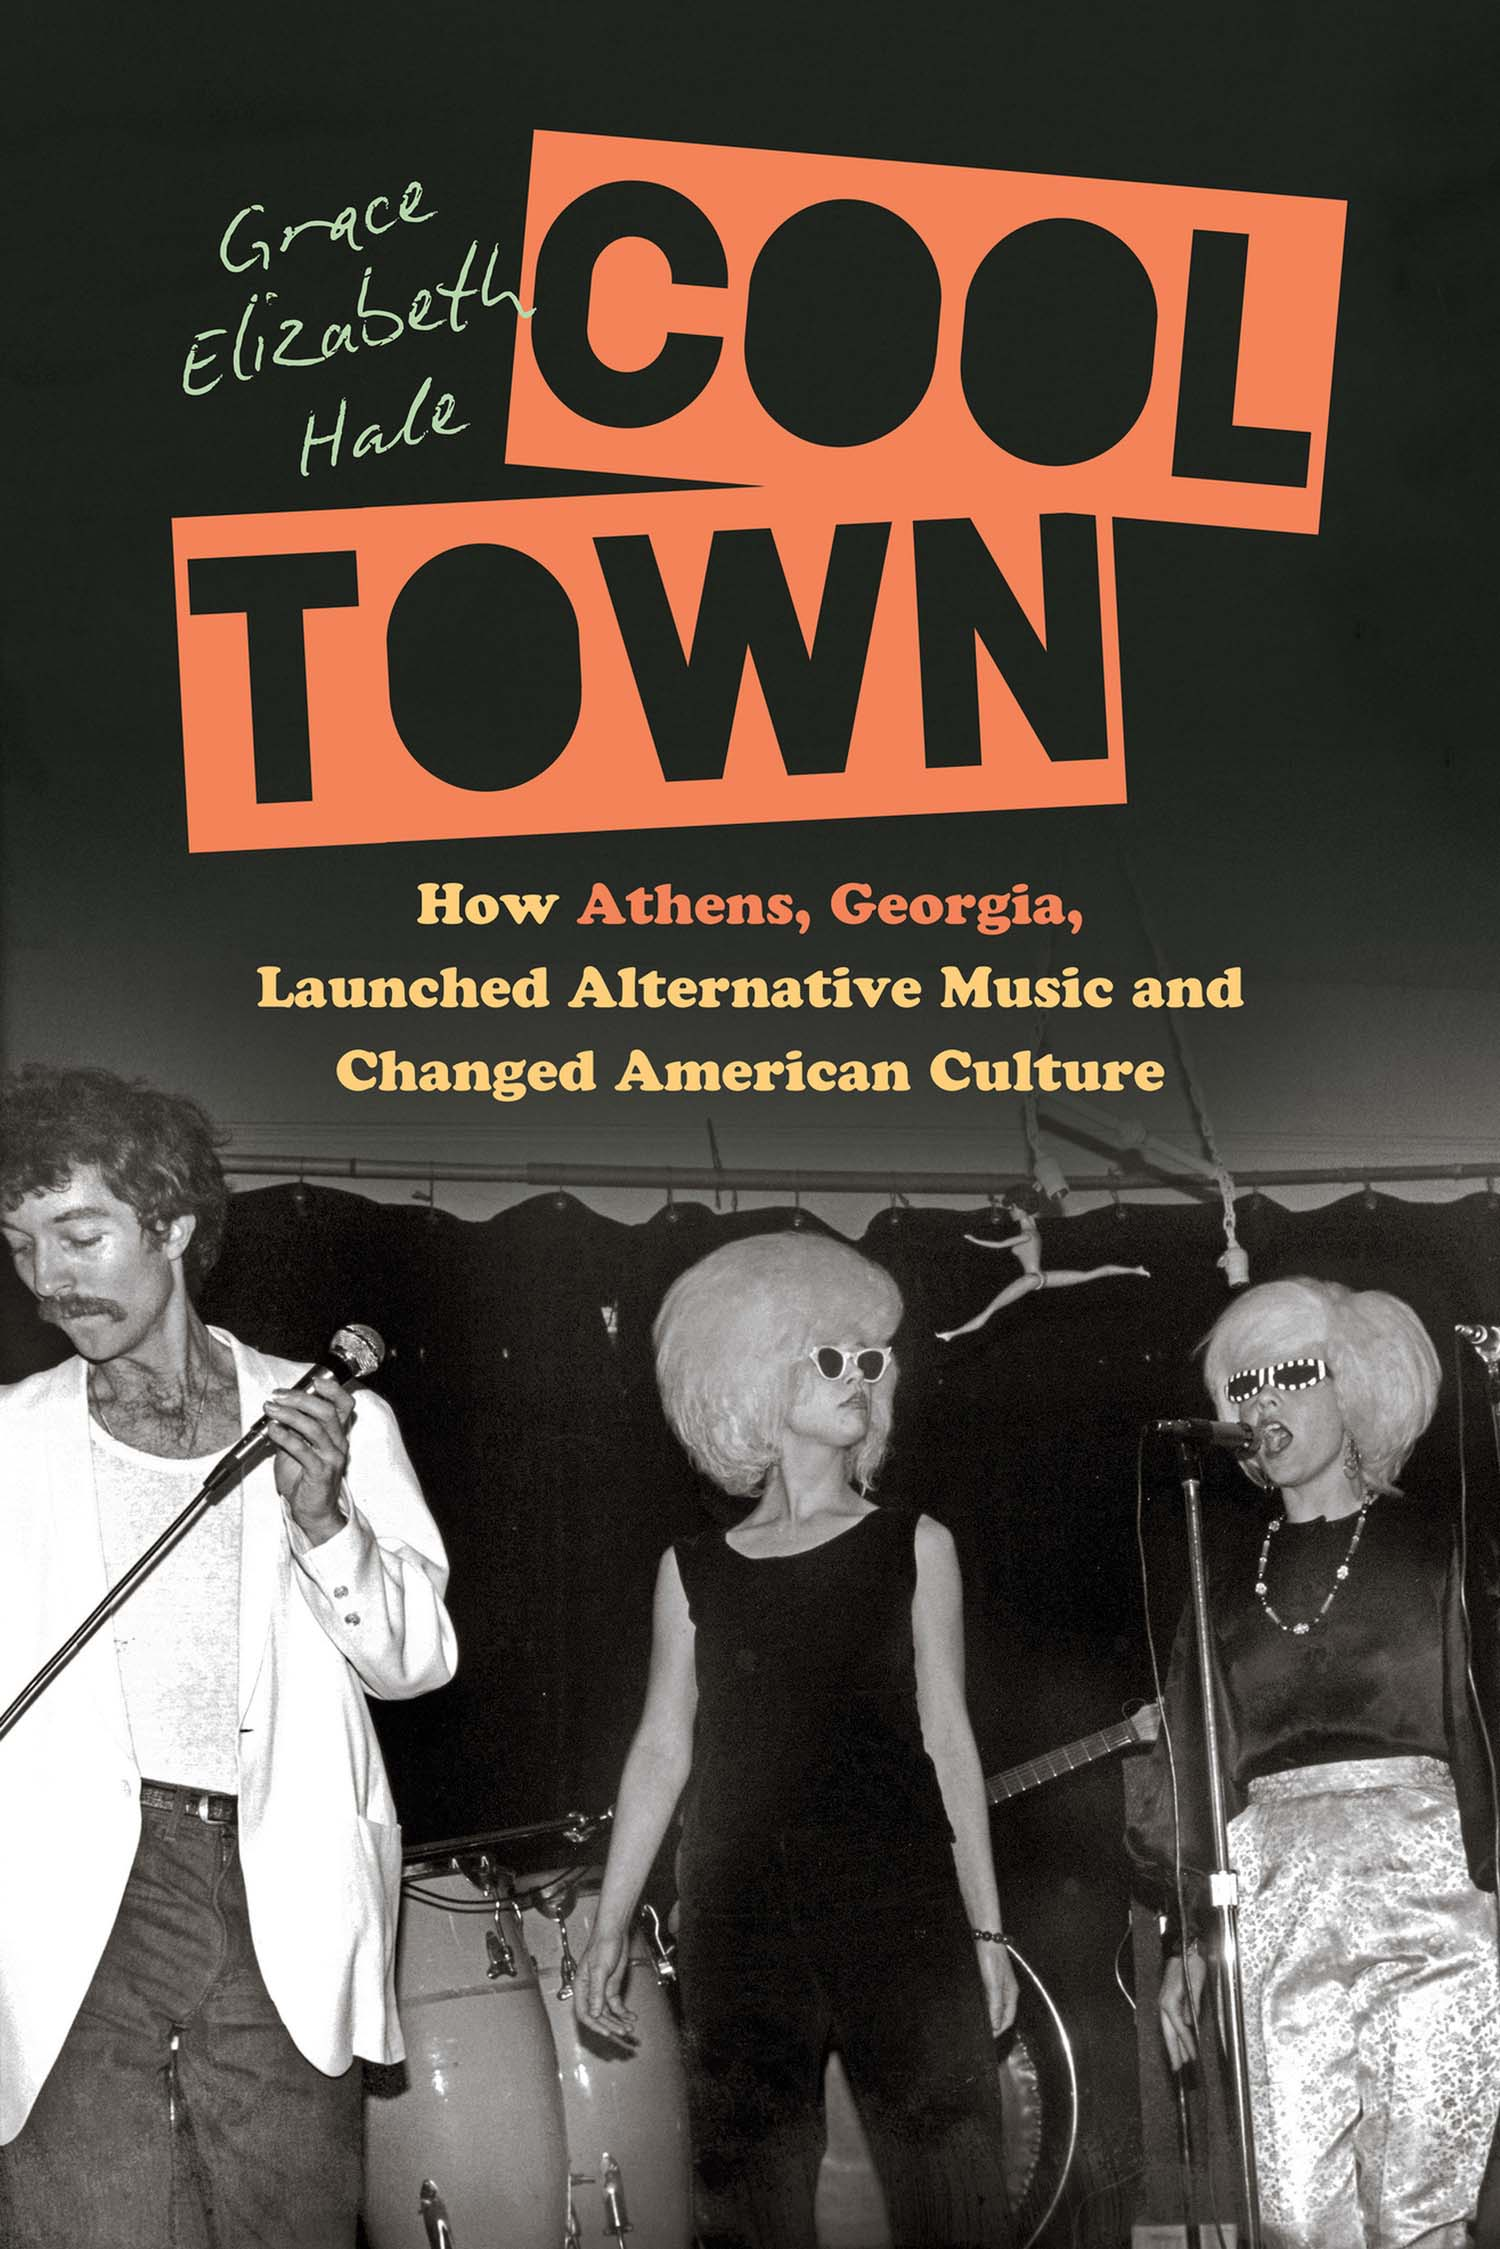 Grace Elizabeth Hale. Cool Town: How Athens, Georgia, Launched Alternative Music and Changed American Culture